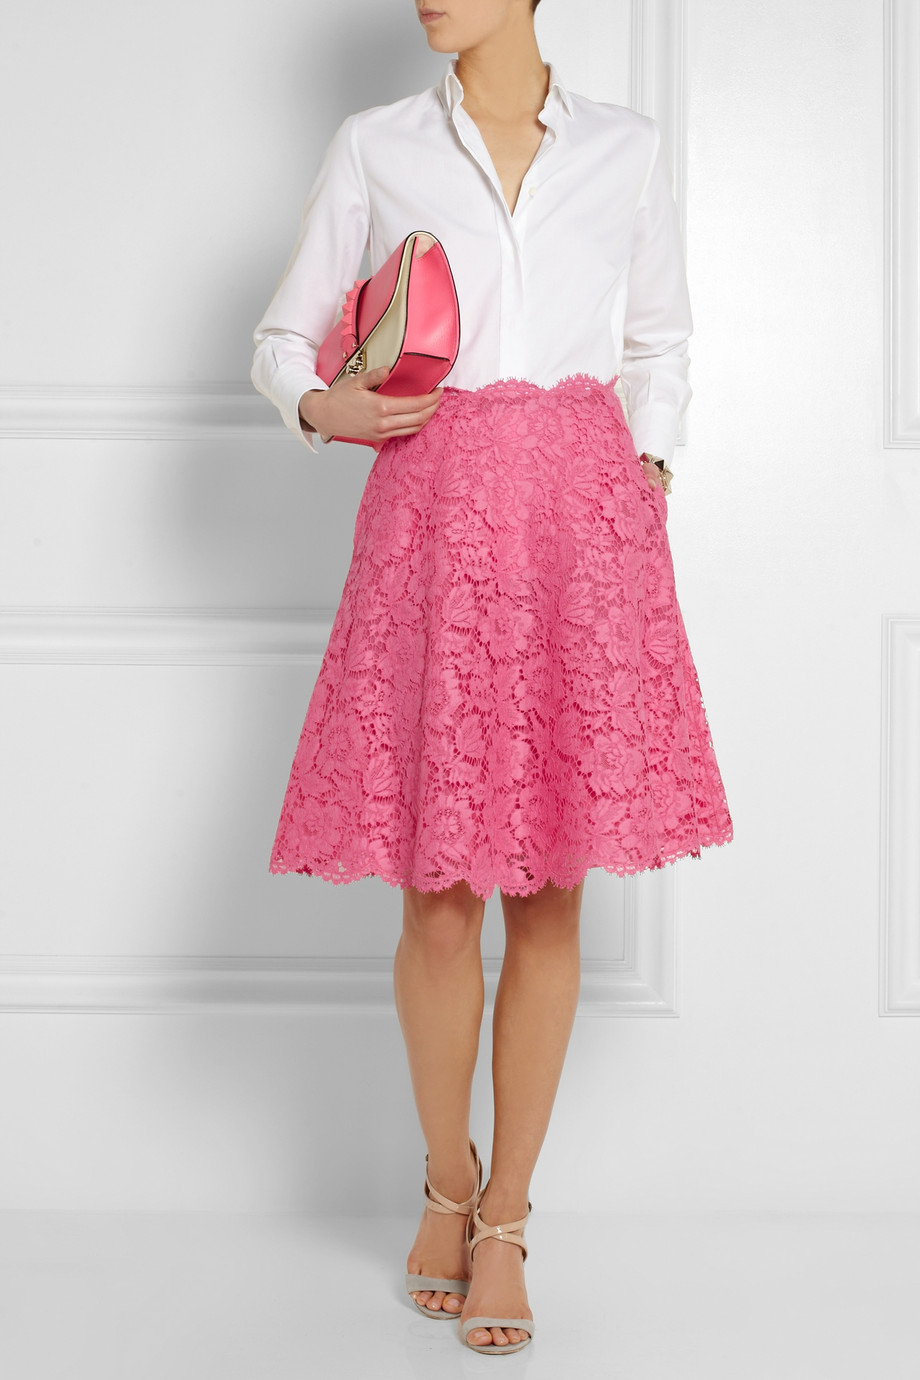 Lyst - Valentino Lace Skirt in Pink